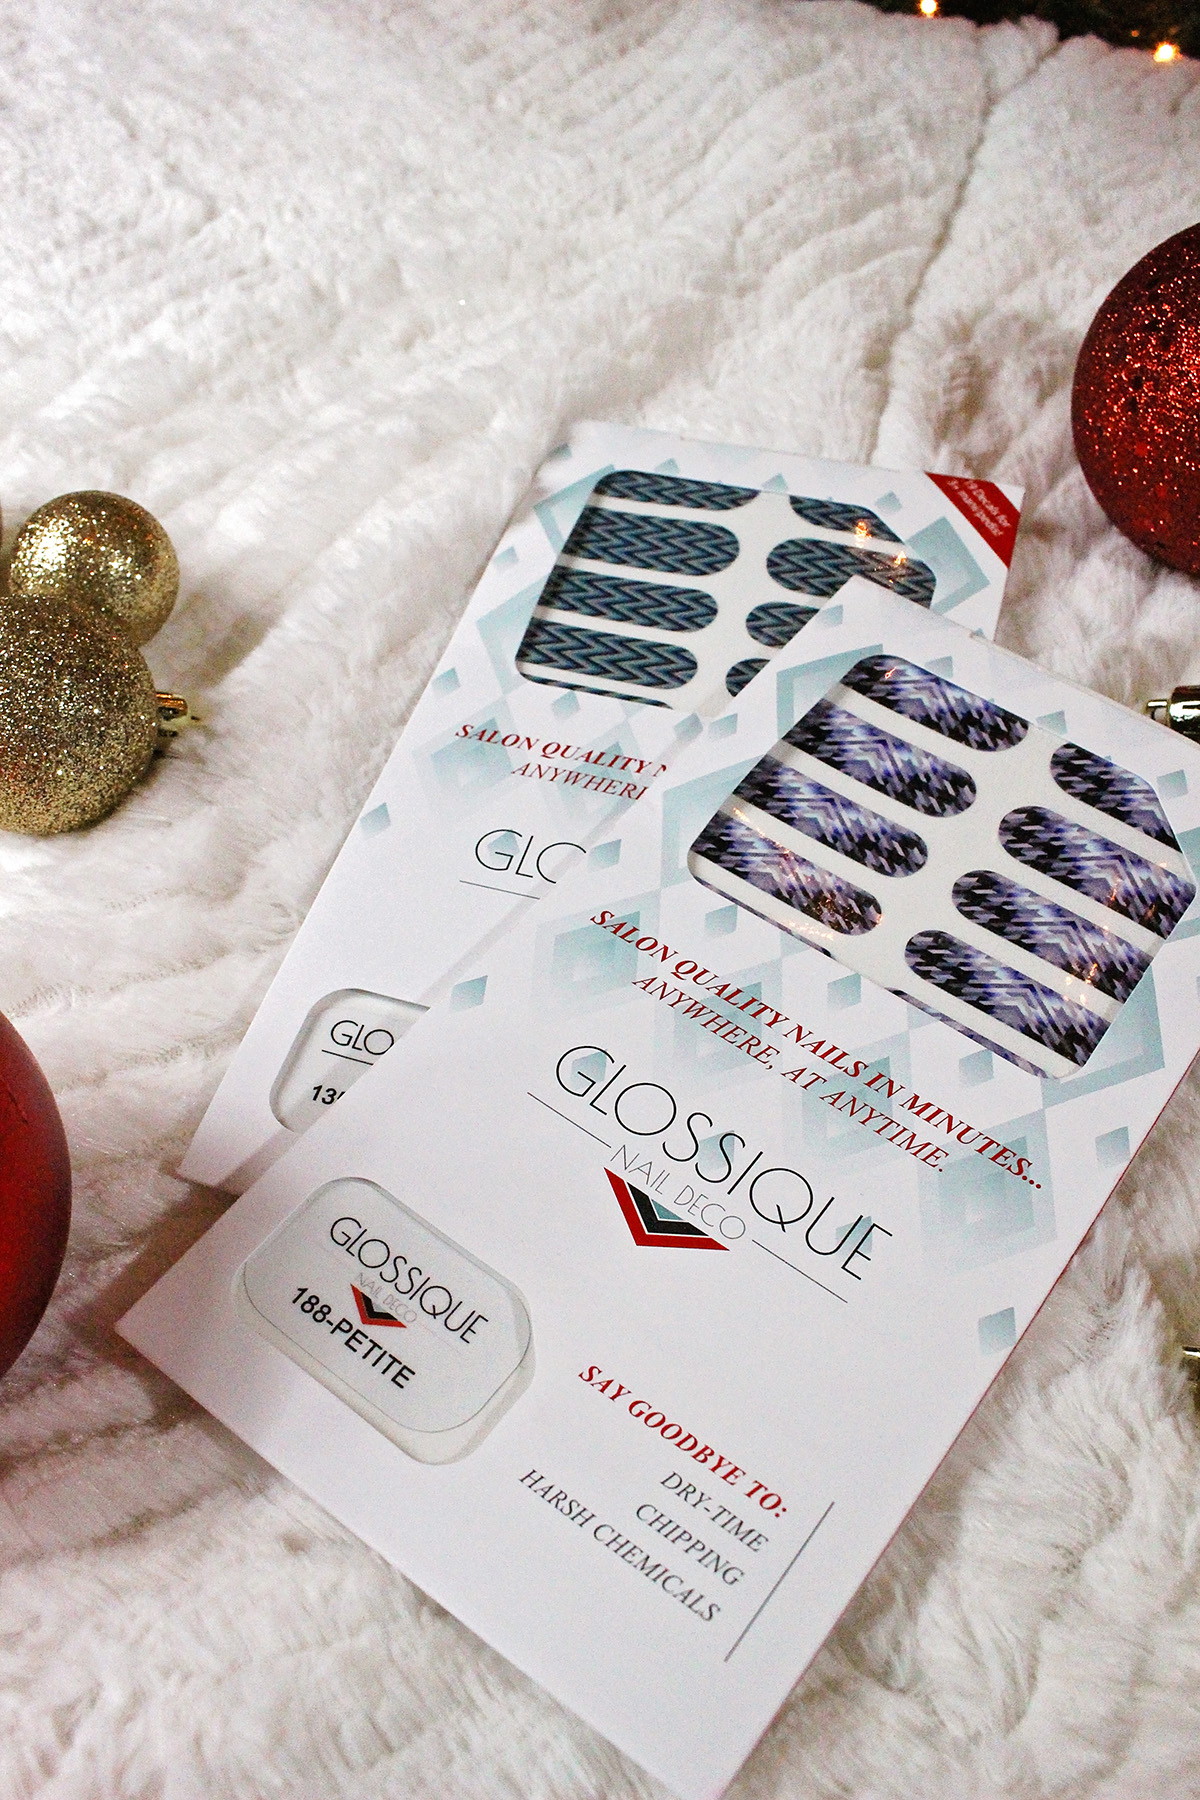 Glosique Nail Wraps featured in A Well Crafted Gift Guide (sponsored)